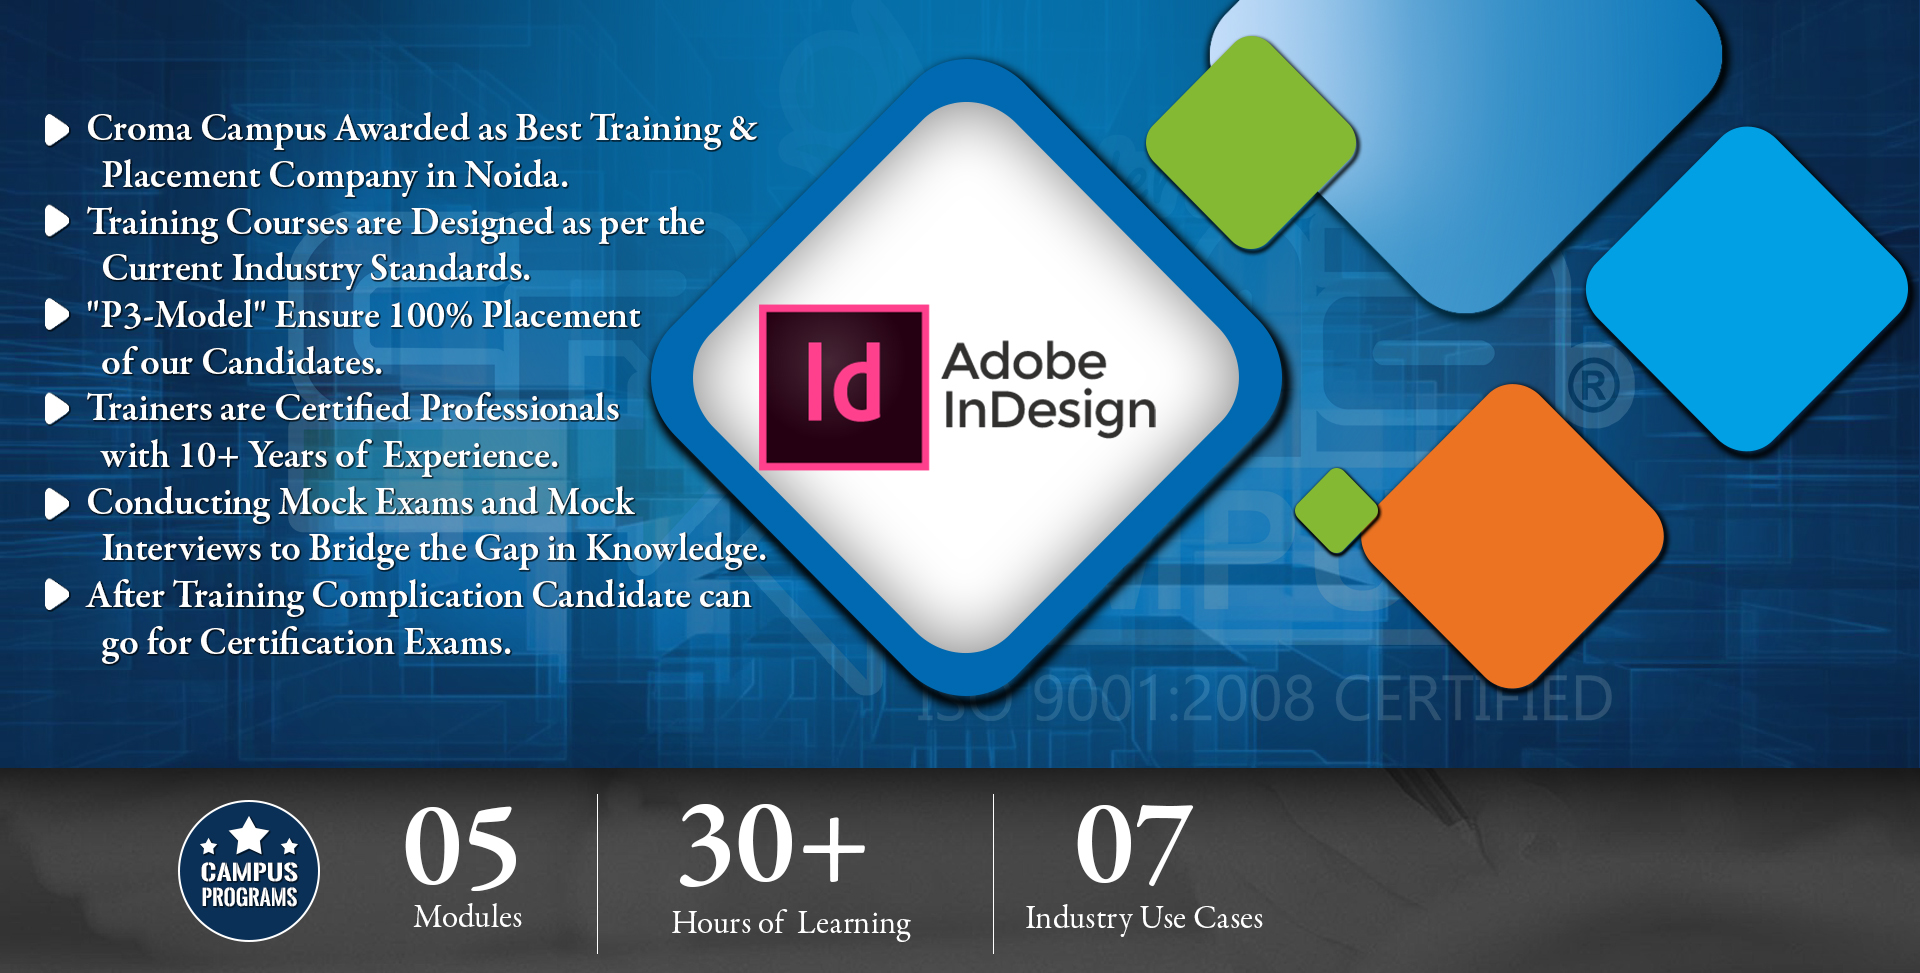 Adobe Indesign Training in Noida